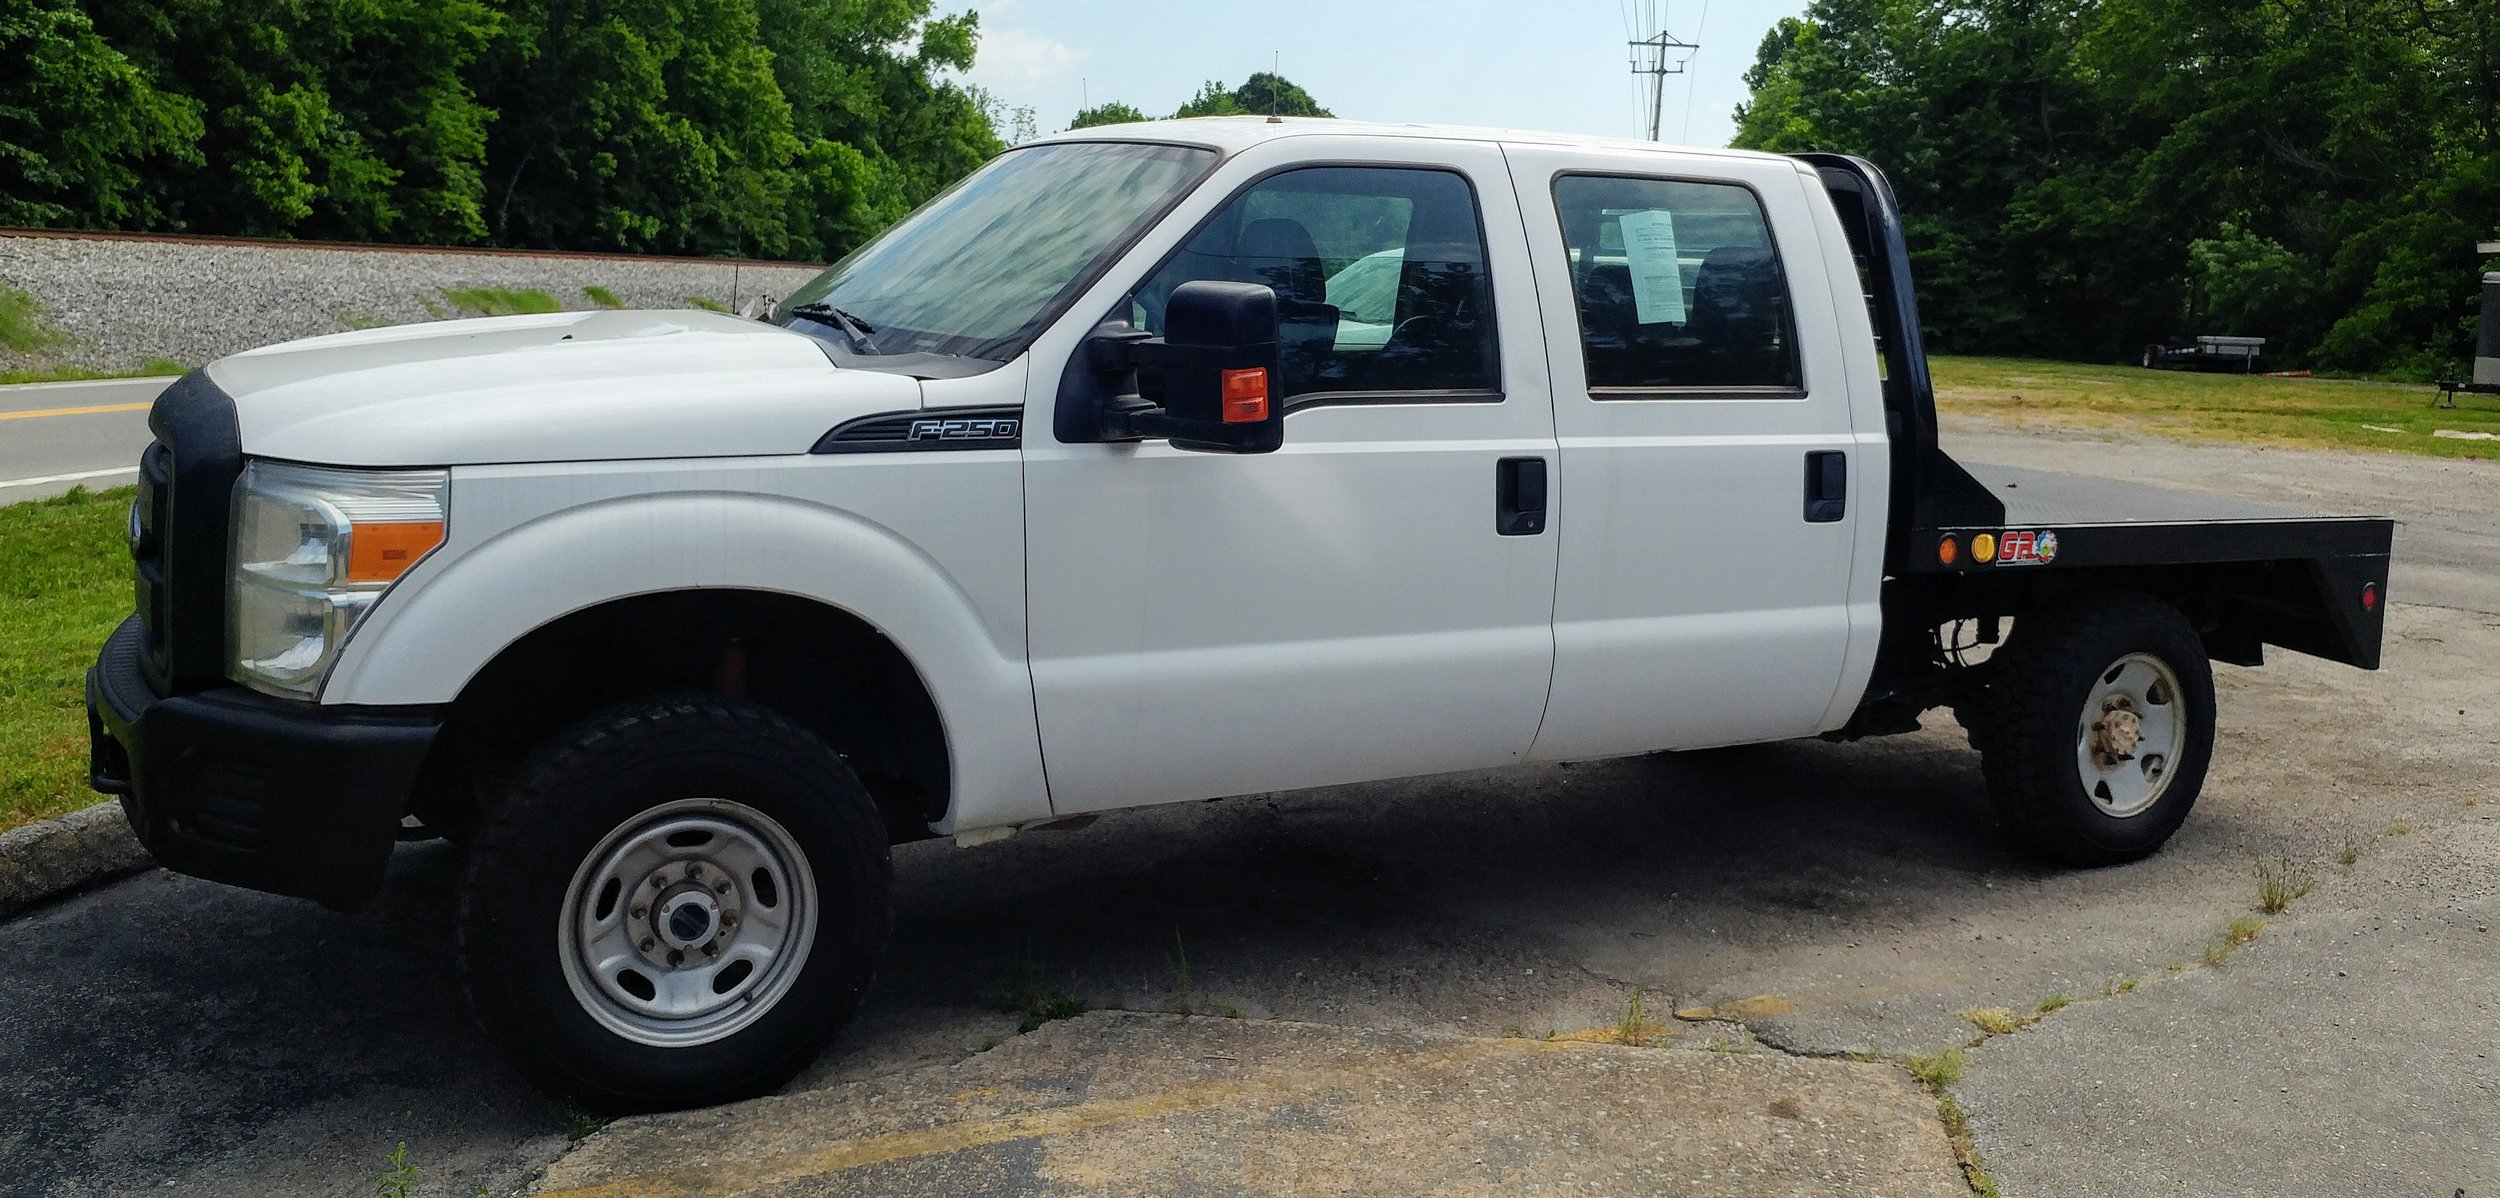 2014 Ford F250 Crew Cab - 91,411 miles - 4WD - Call for pricing!